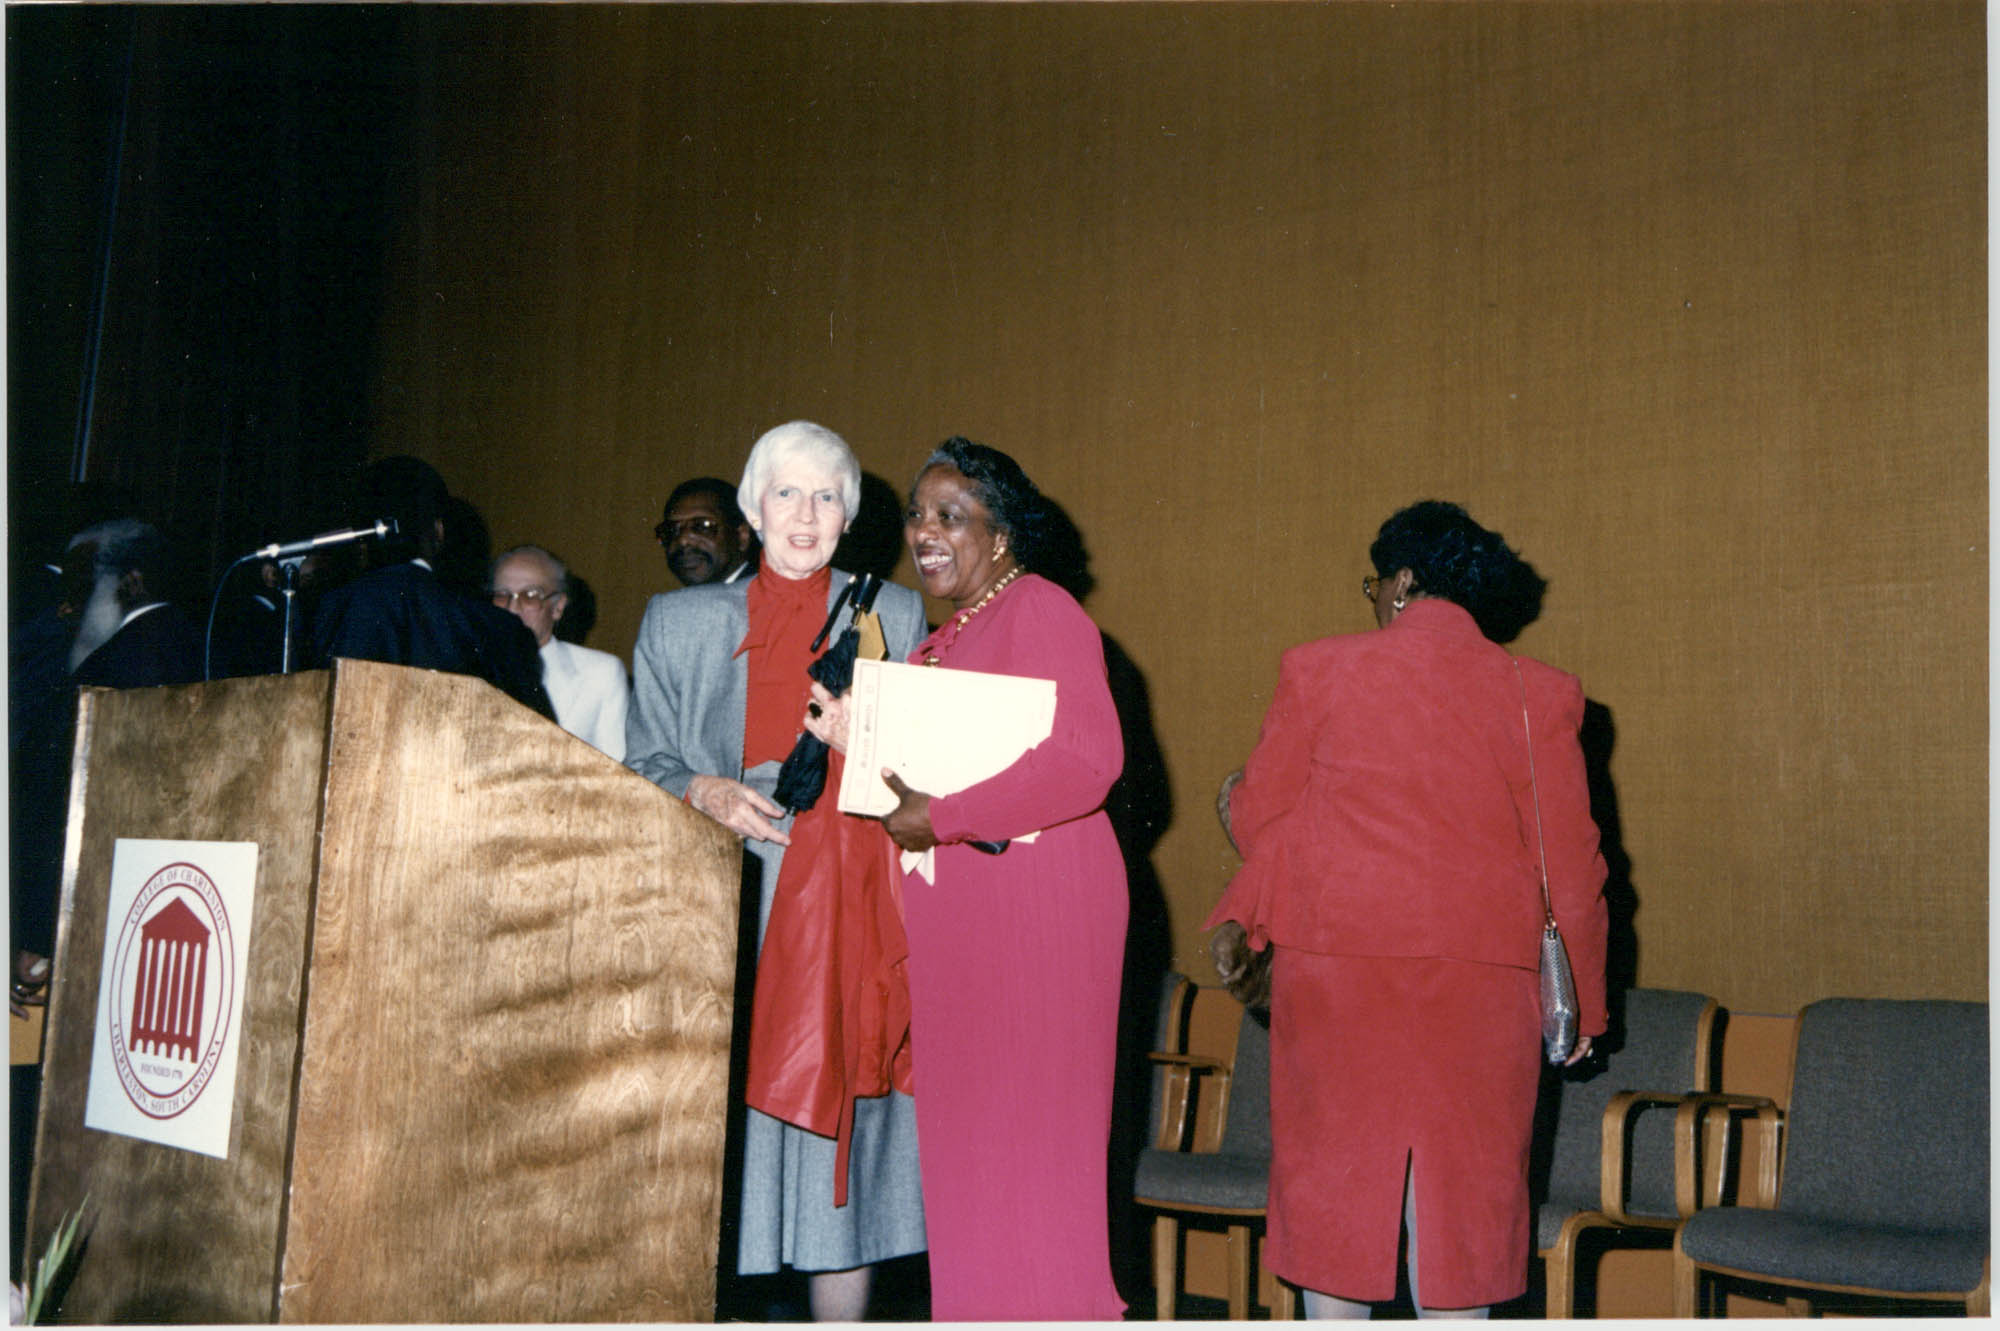 Photograph of People at a College of Charleston Event